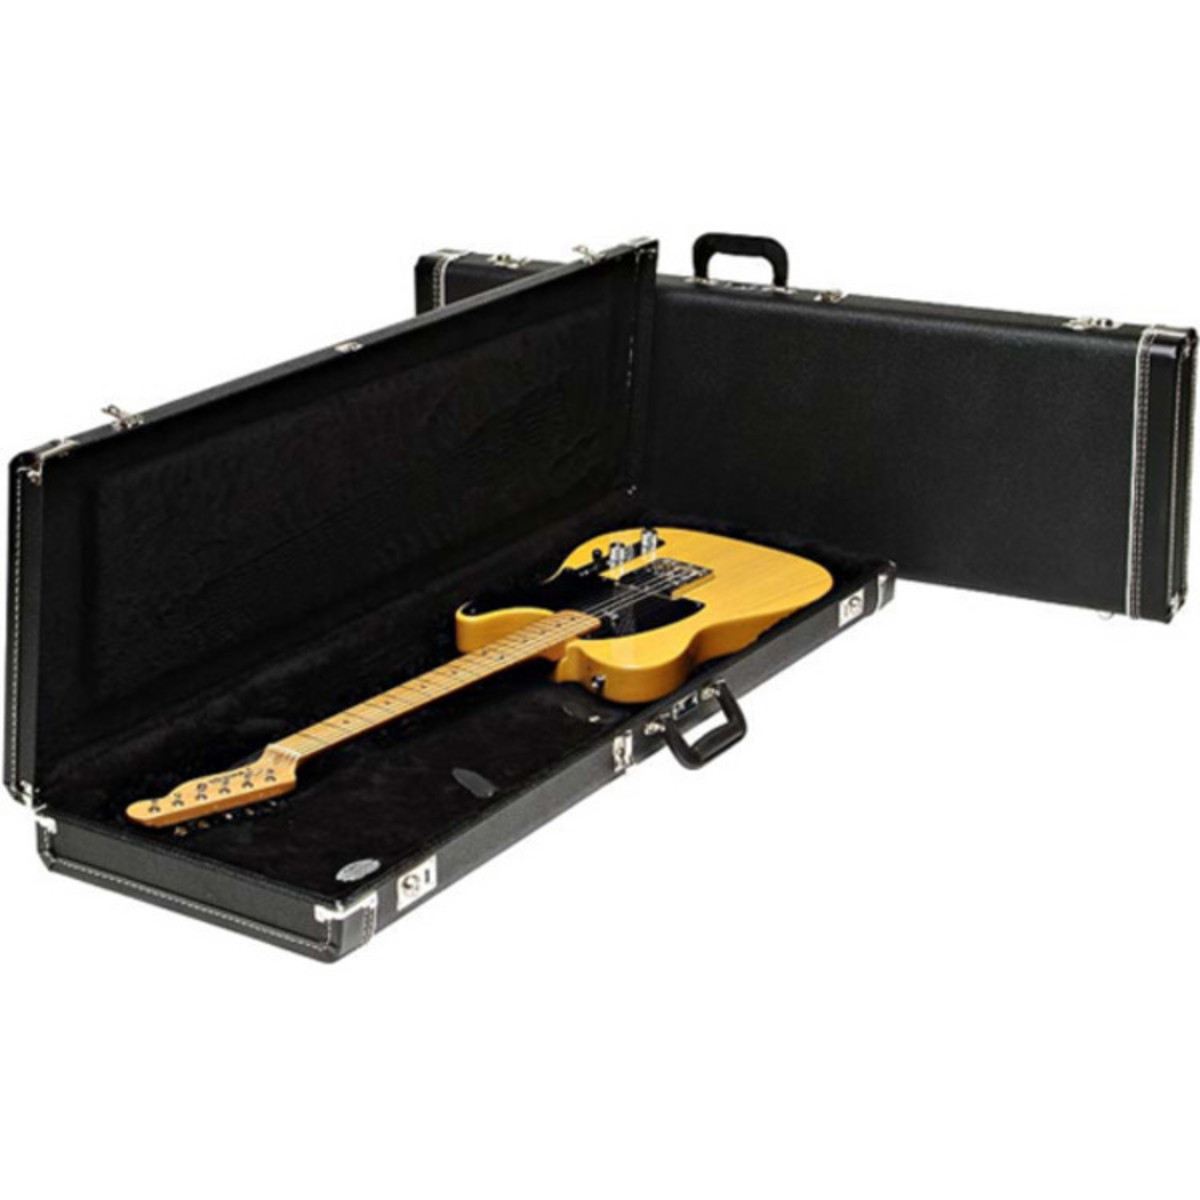 fender multi fit guitar case for mustang jag stang cyclone black at. Black Bedroom Furniture Sets. Home Design Ideas